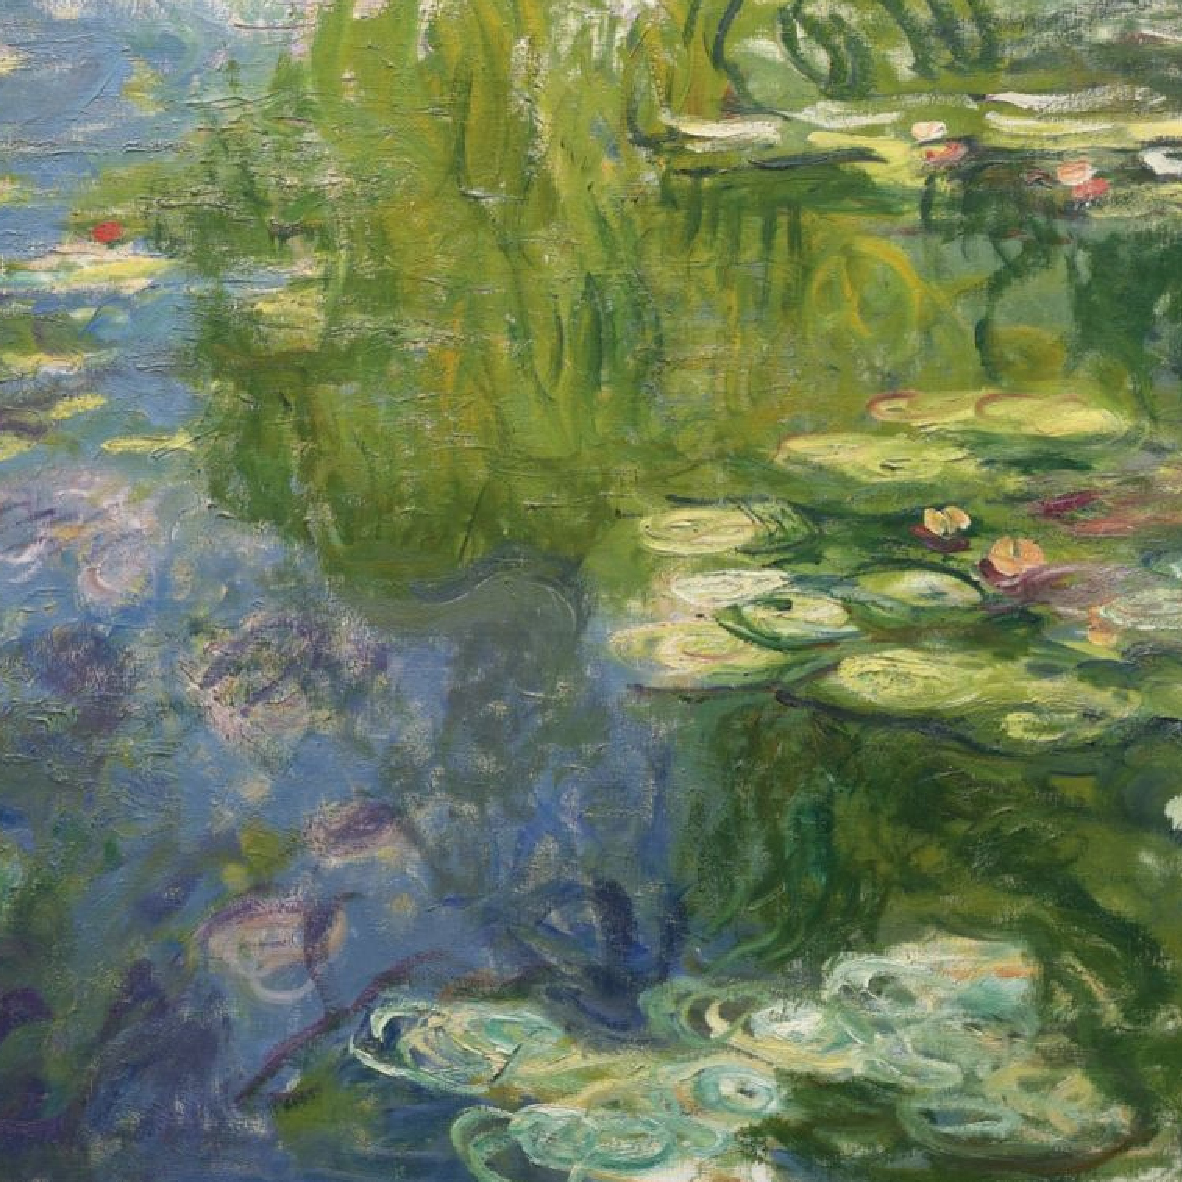 Claude Monet Le Bassin Aux Nympheas #10: Art By Claude Monet. Claude Monet. Le Bassin Aux Nymphéas